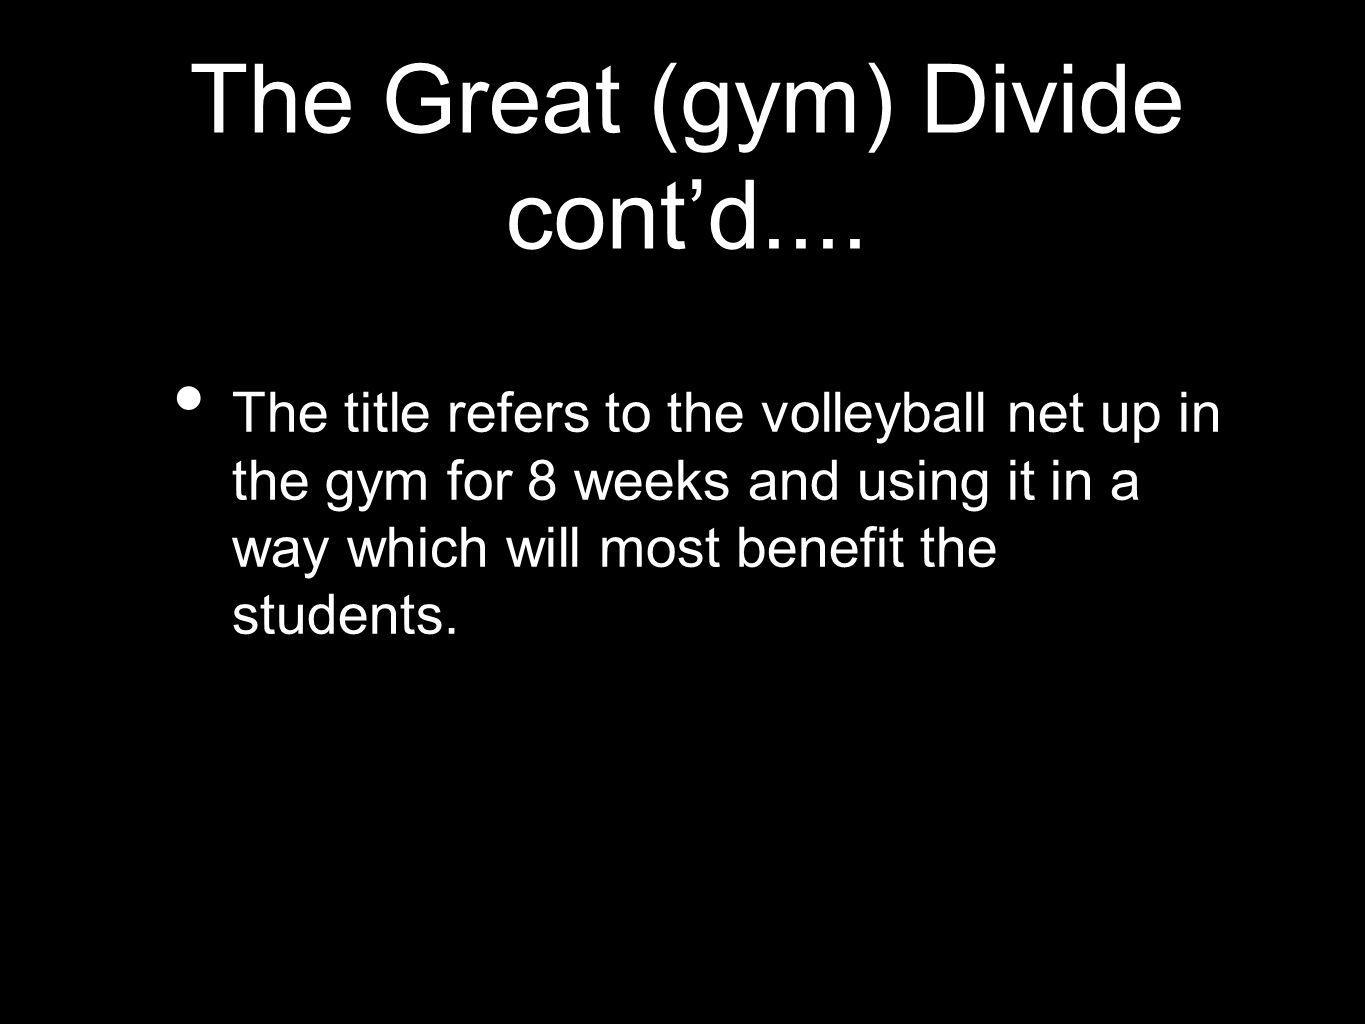 The Great (gym) Divide contd....